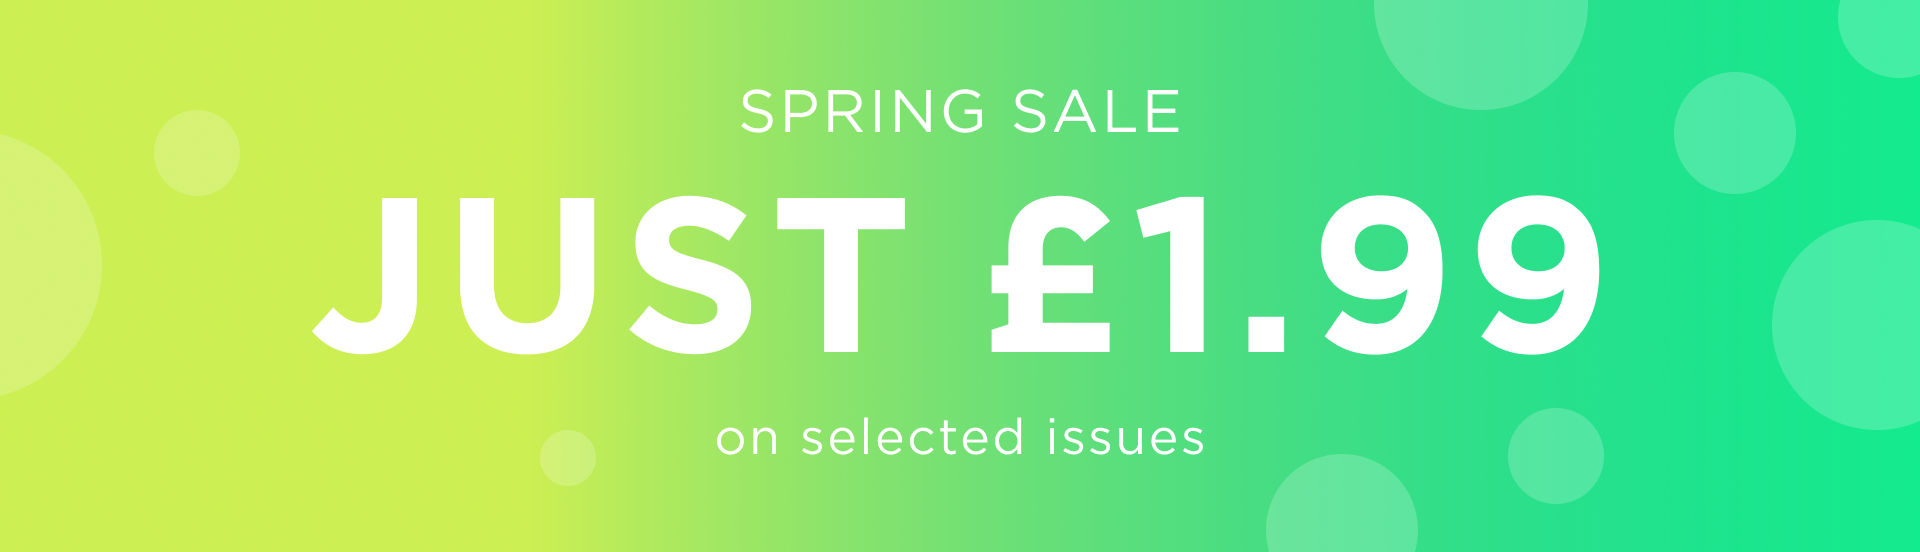 Spring Sale - just £1.99 per issue